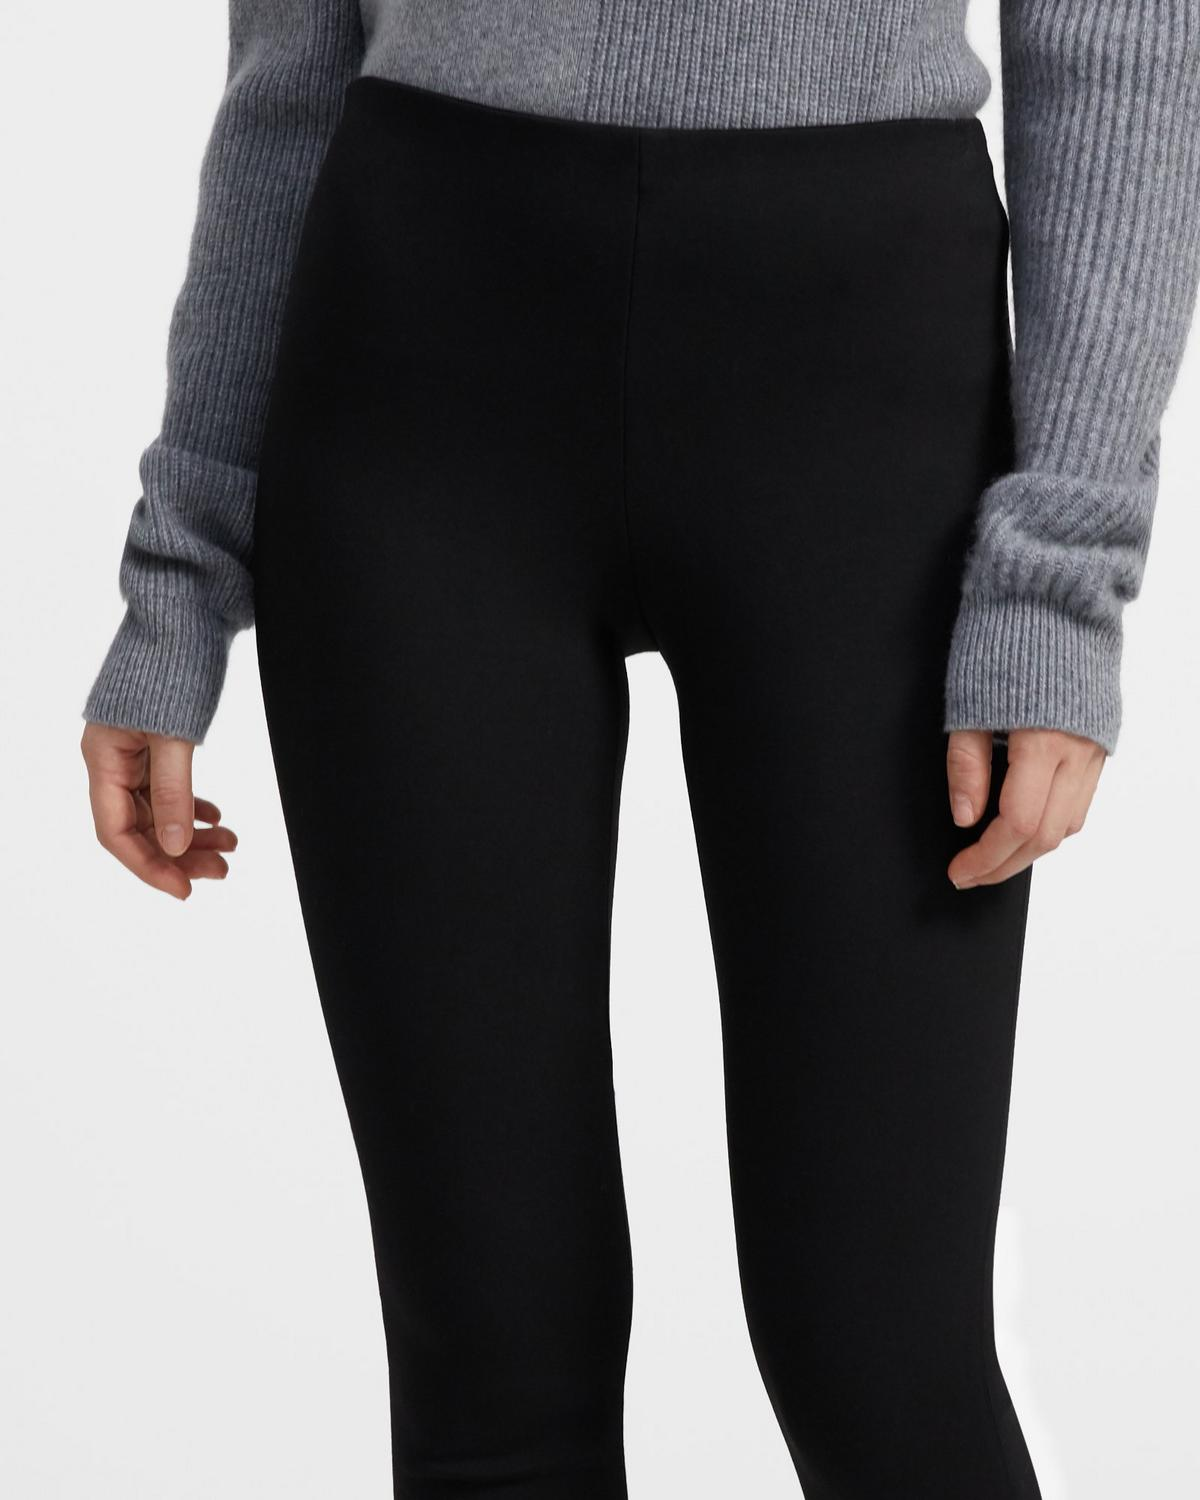 Skinny Legging in Double Knit Jersey